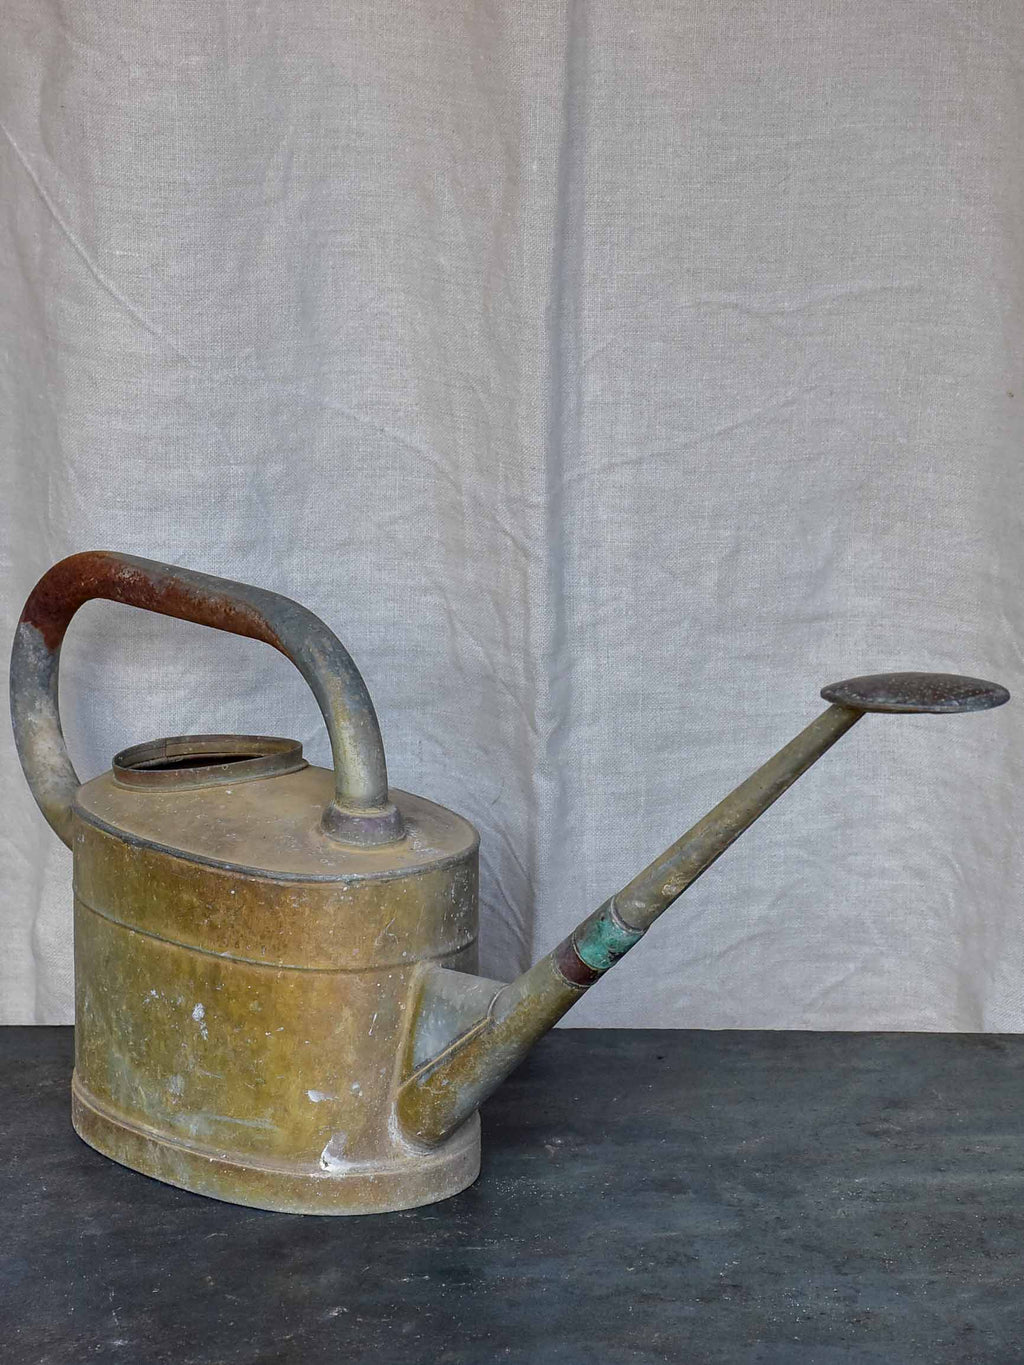 Antique French watering can with long spout